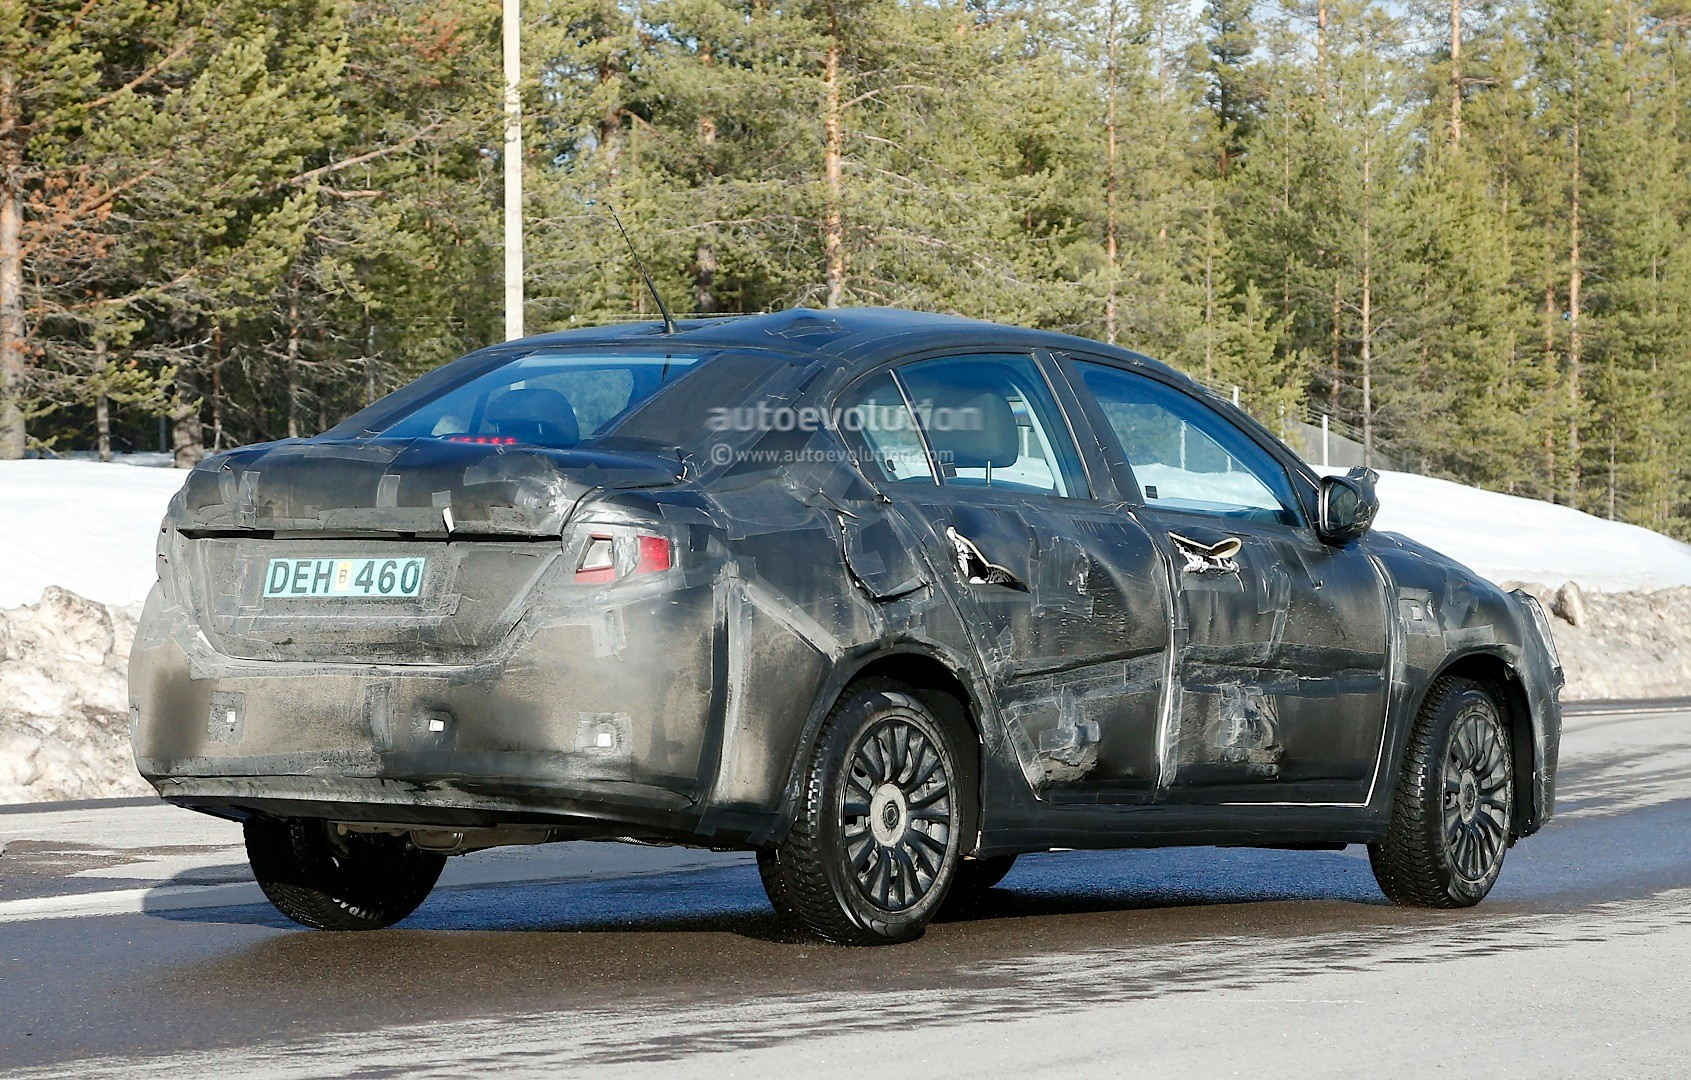 2015 - [Fiat] Tipo sedan Spyshots-all-new-2016-fiat-linea-compact-sedan-spotted-for-the-first-time_8